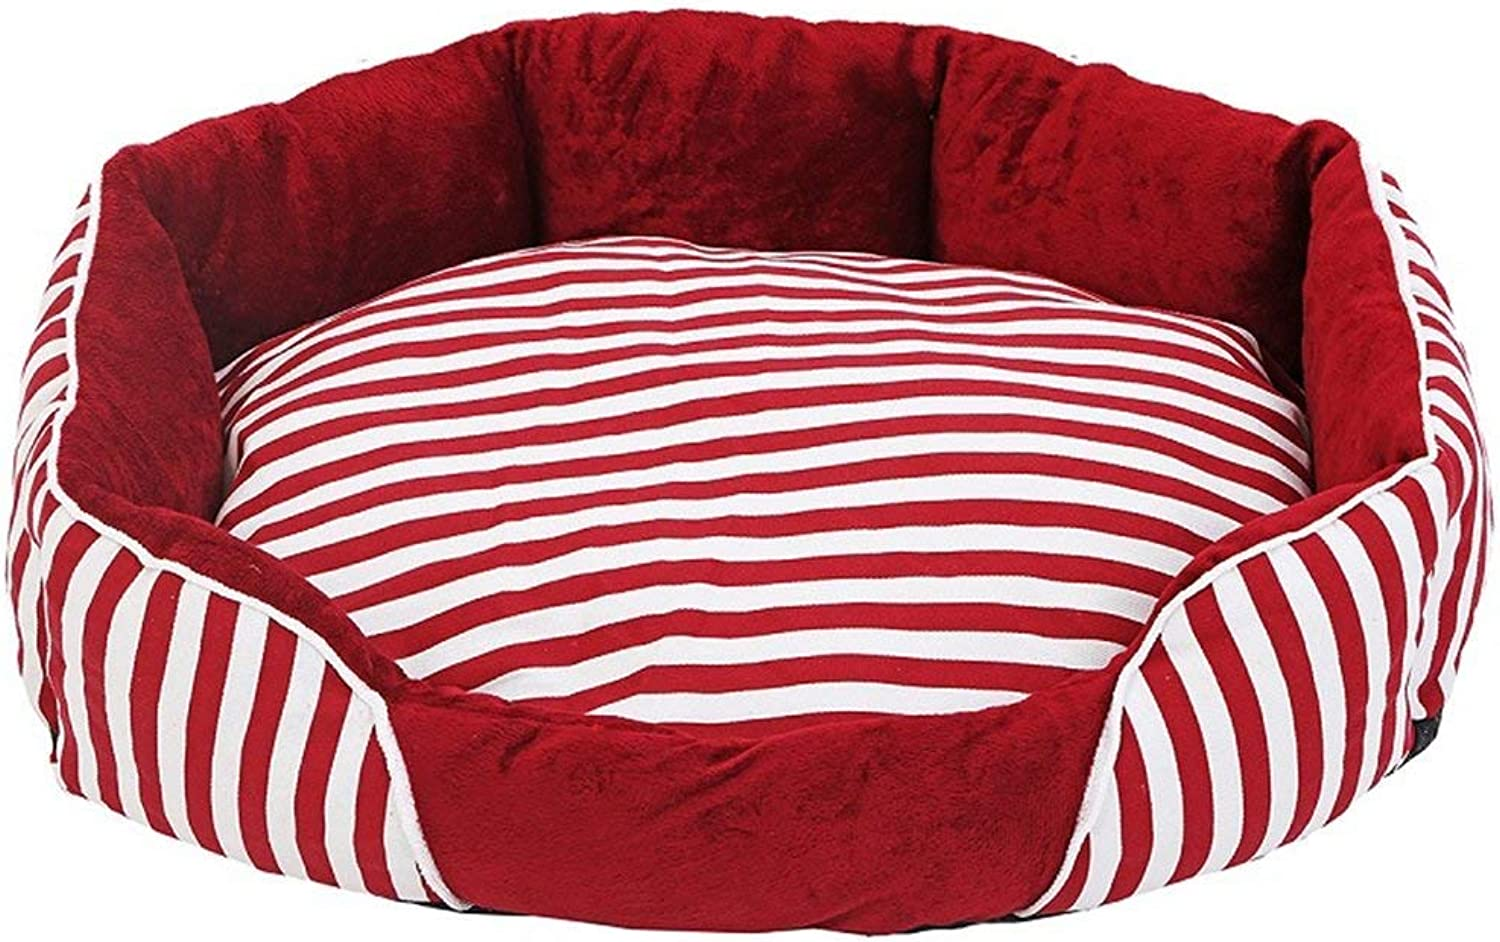 Gperw Dogs Furniture Round red and white striped pet PP cotton four seasons were washable cats and kennels Non Slip Cushion Pad (Size   54cm)